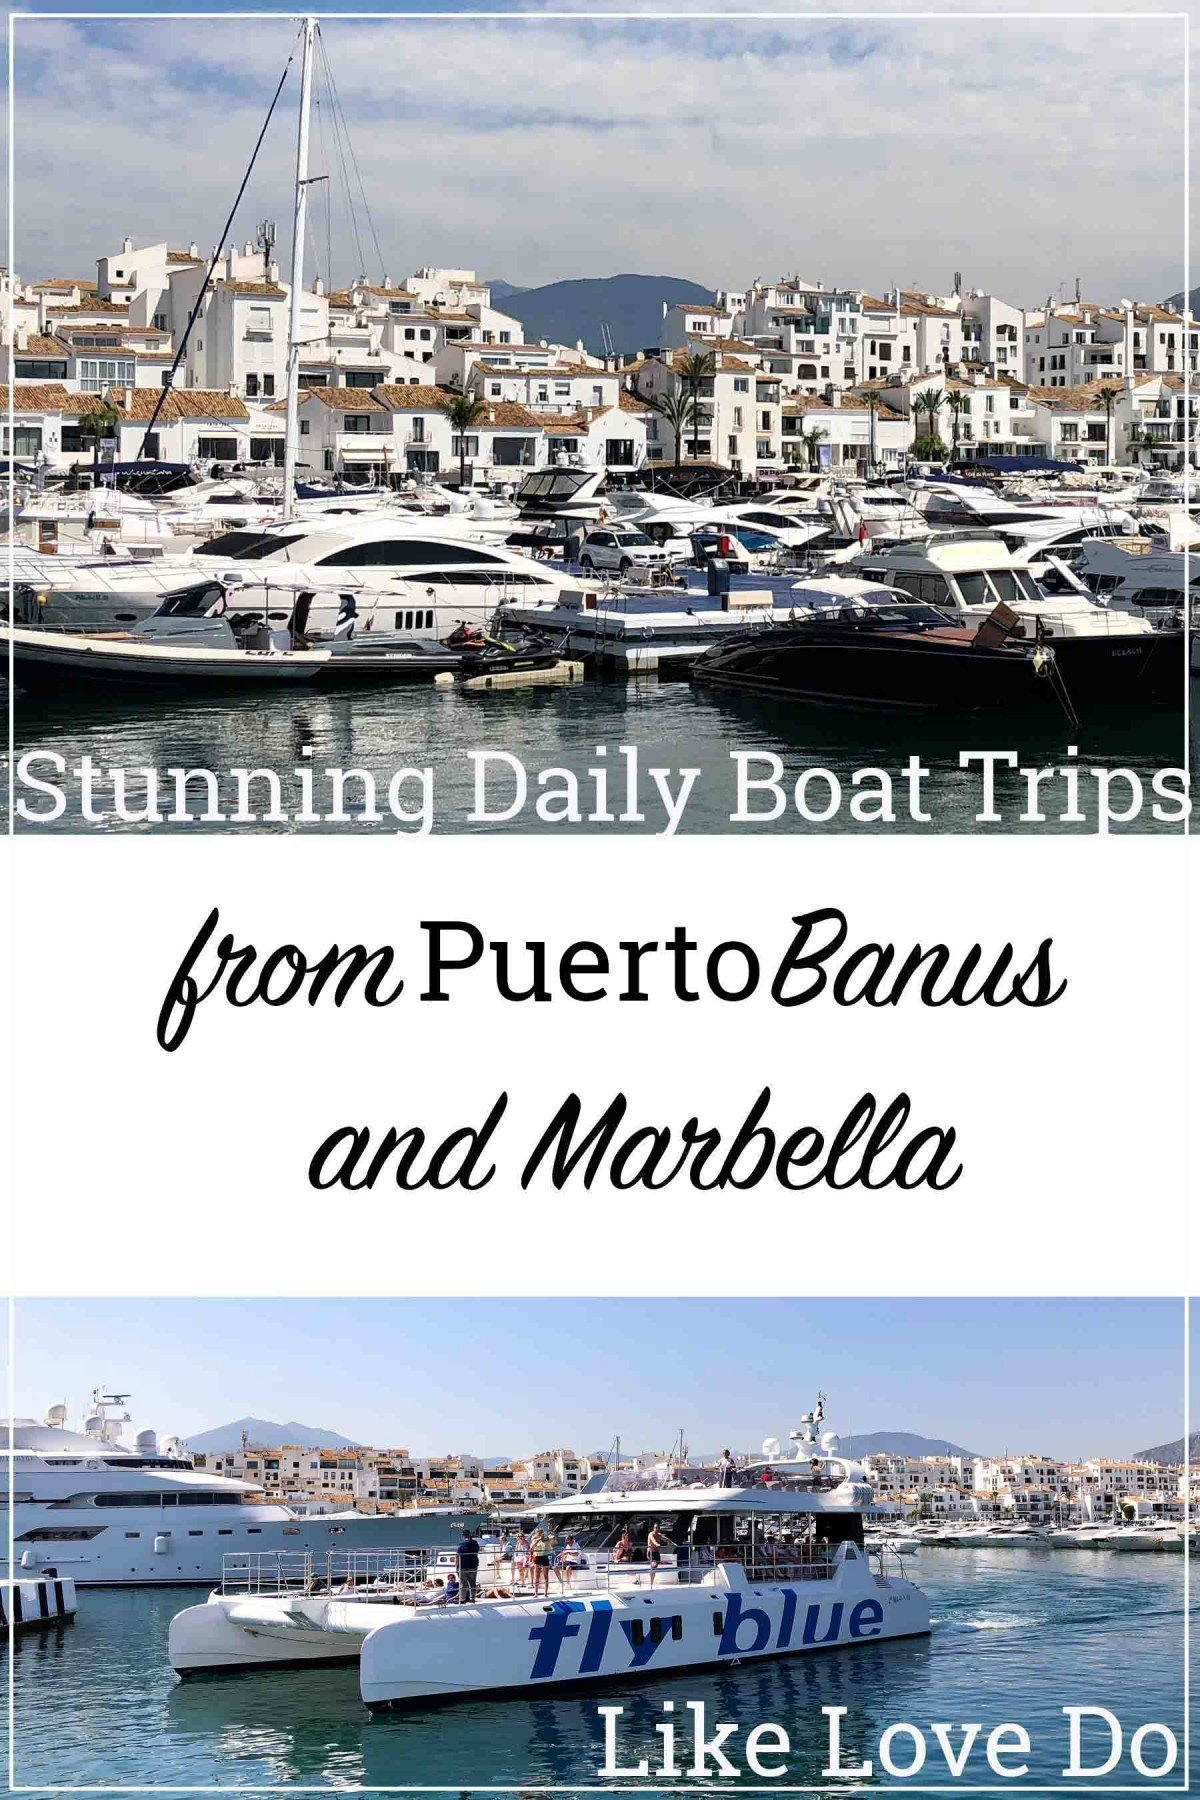 stunning daily Boat trips from Peurto Banus to Marbella the perfct way to see Marbella old Town